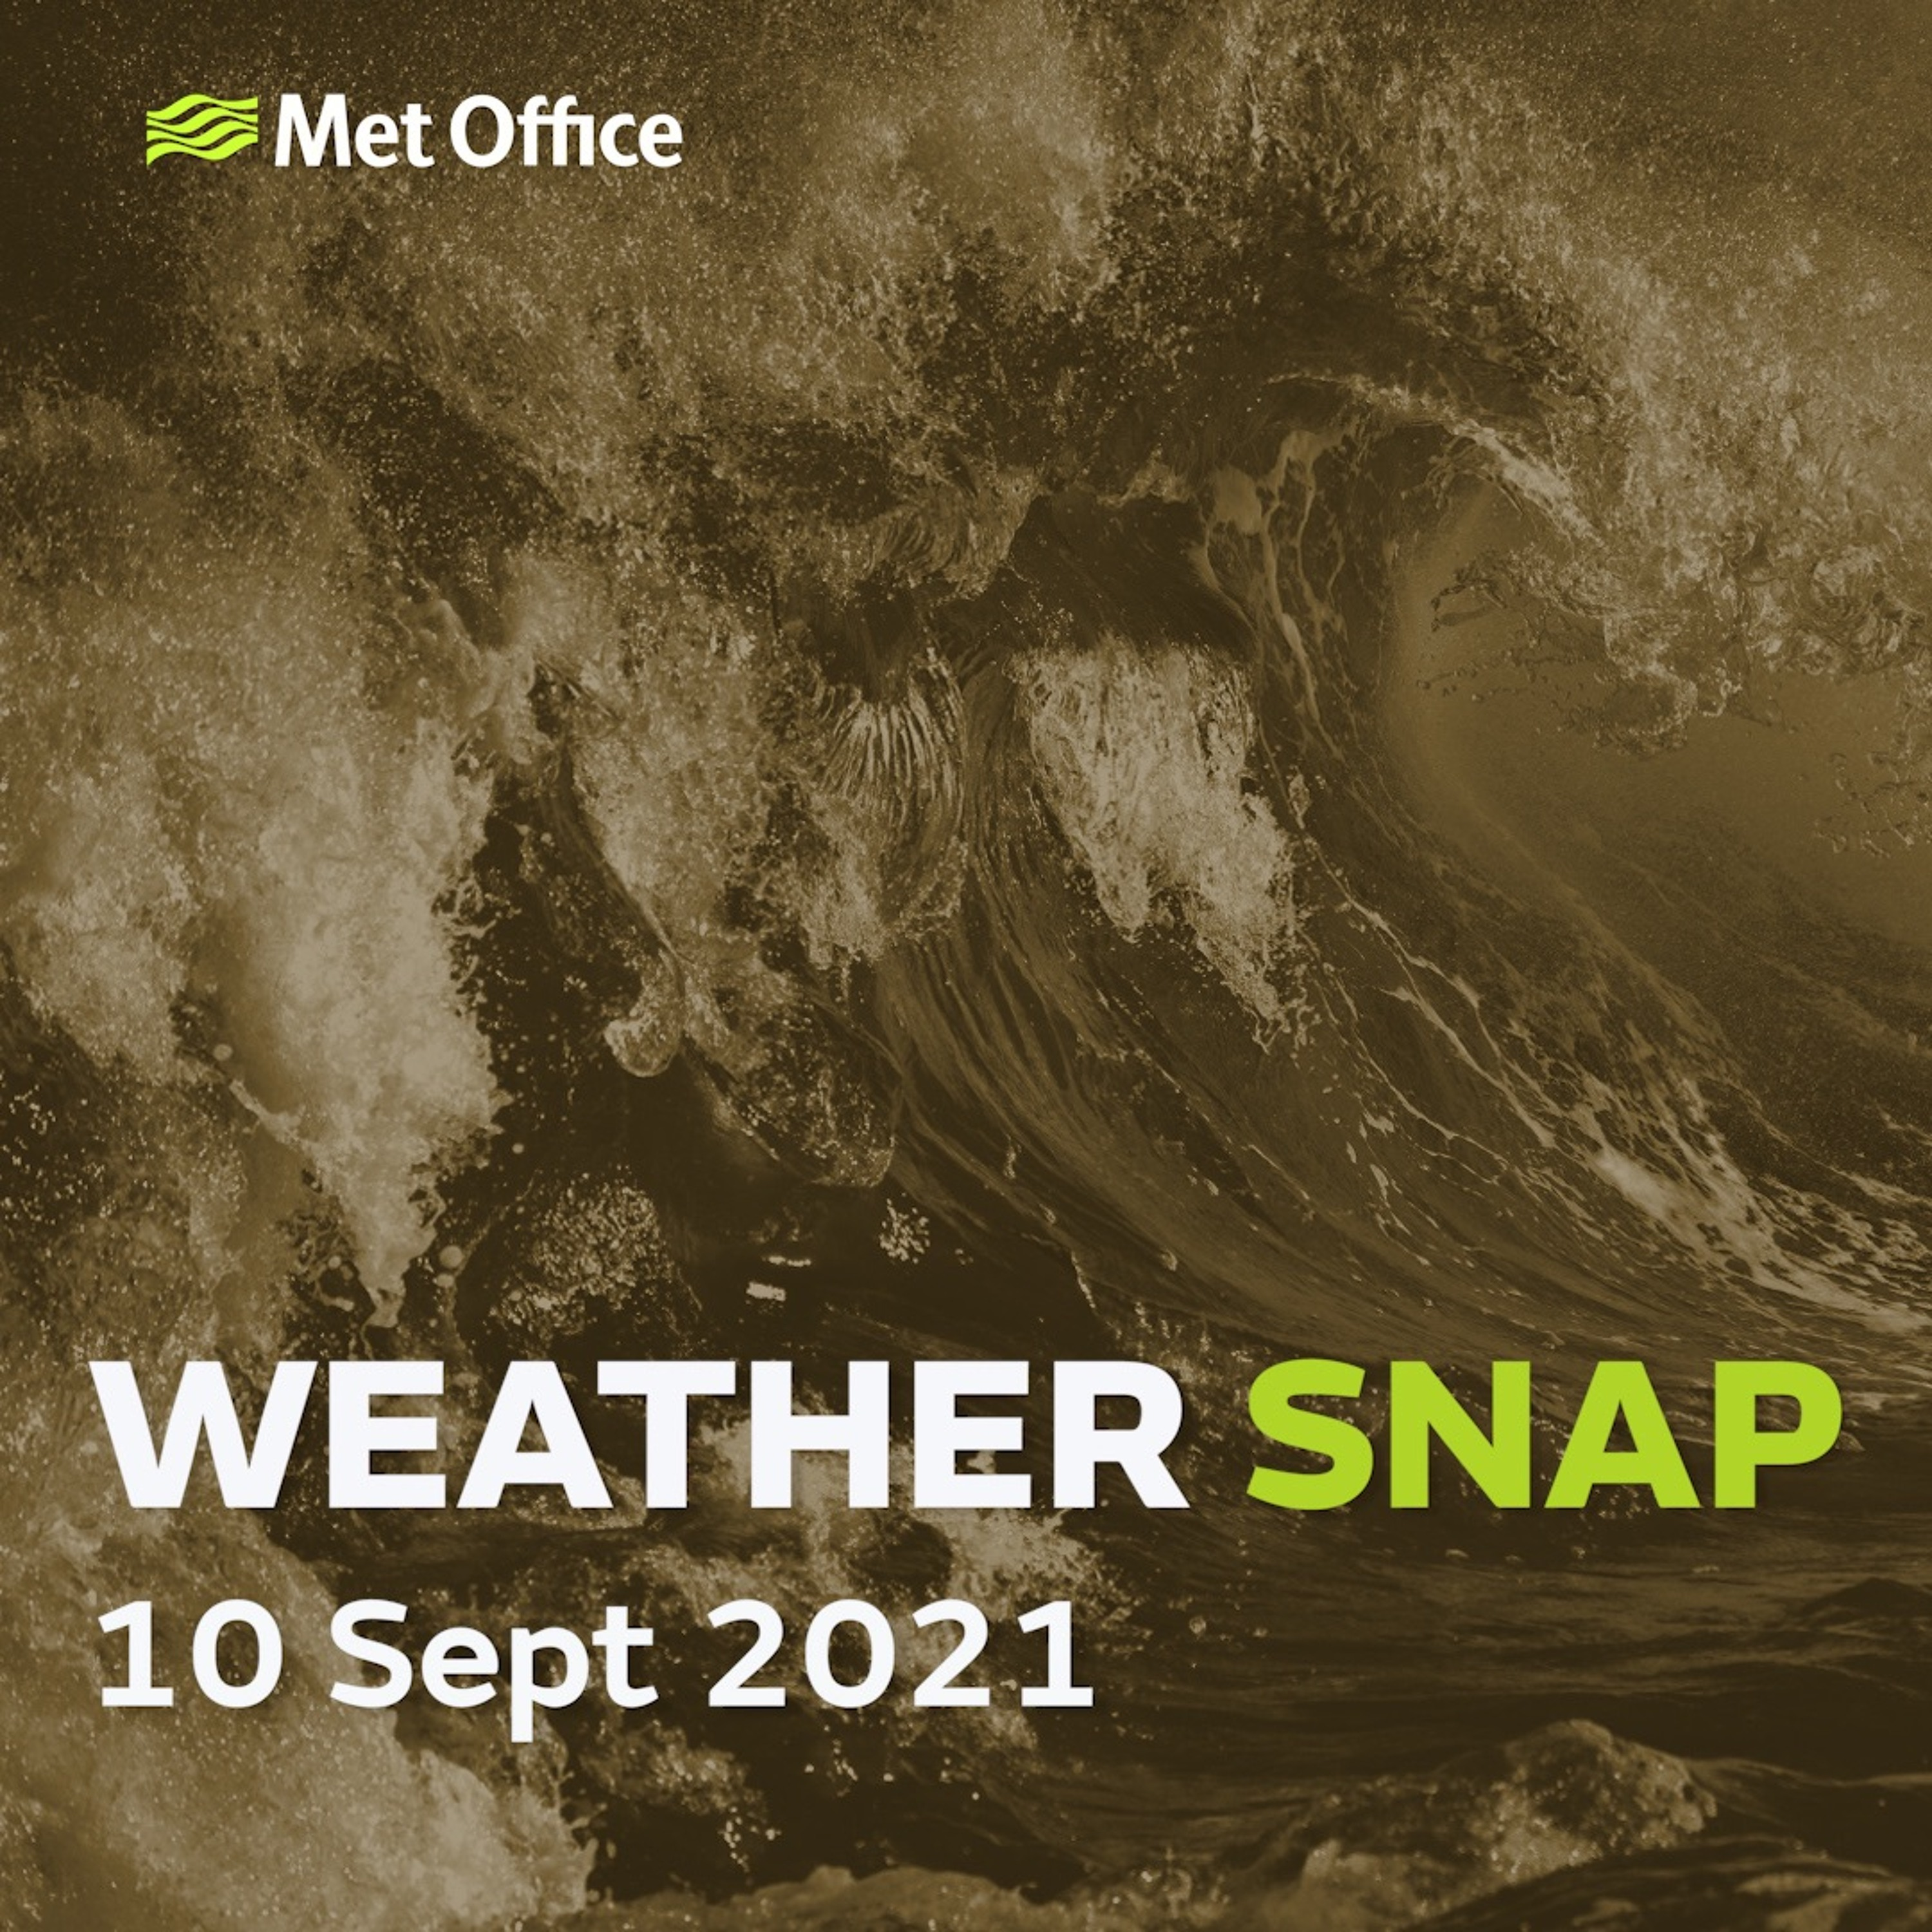 Weather Snap 10 Sept 2021